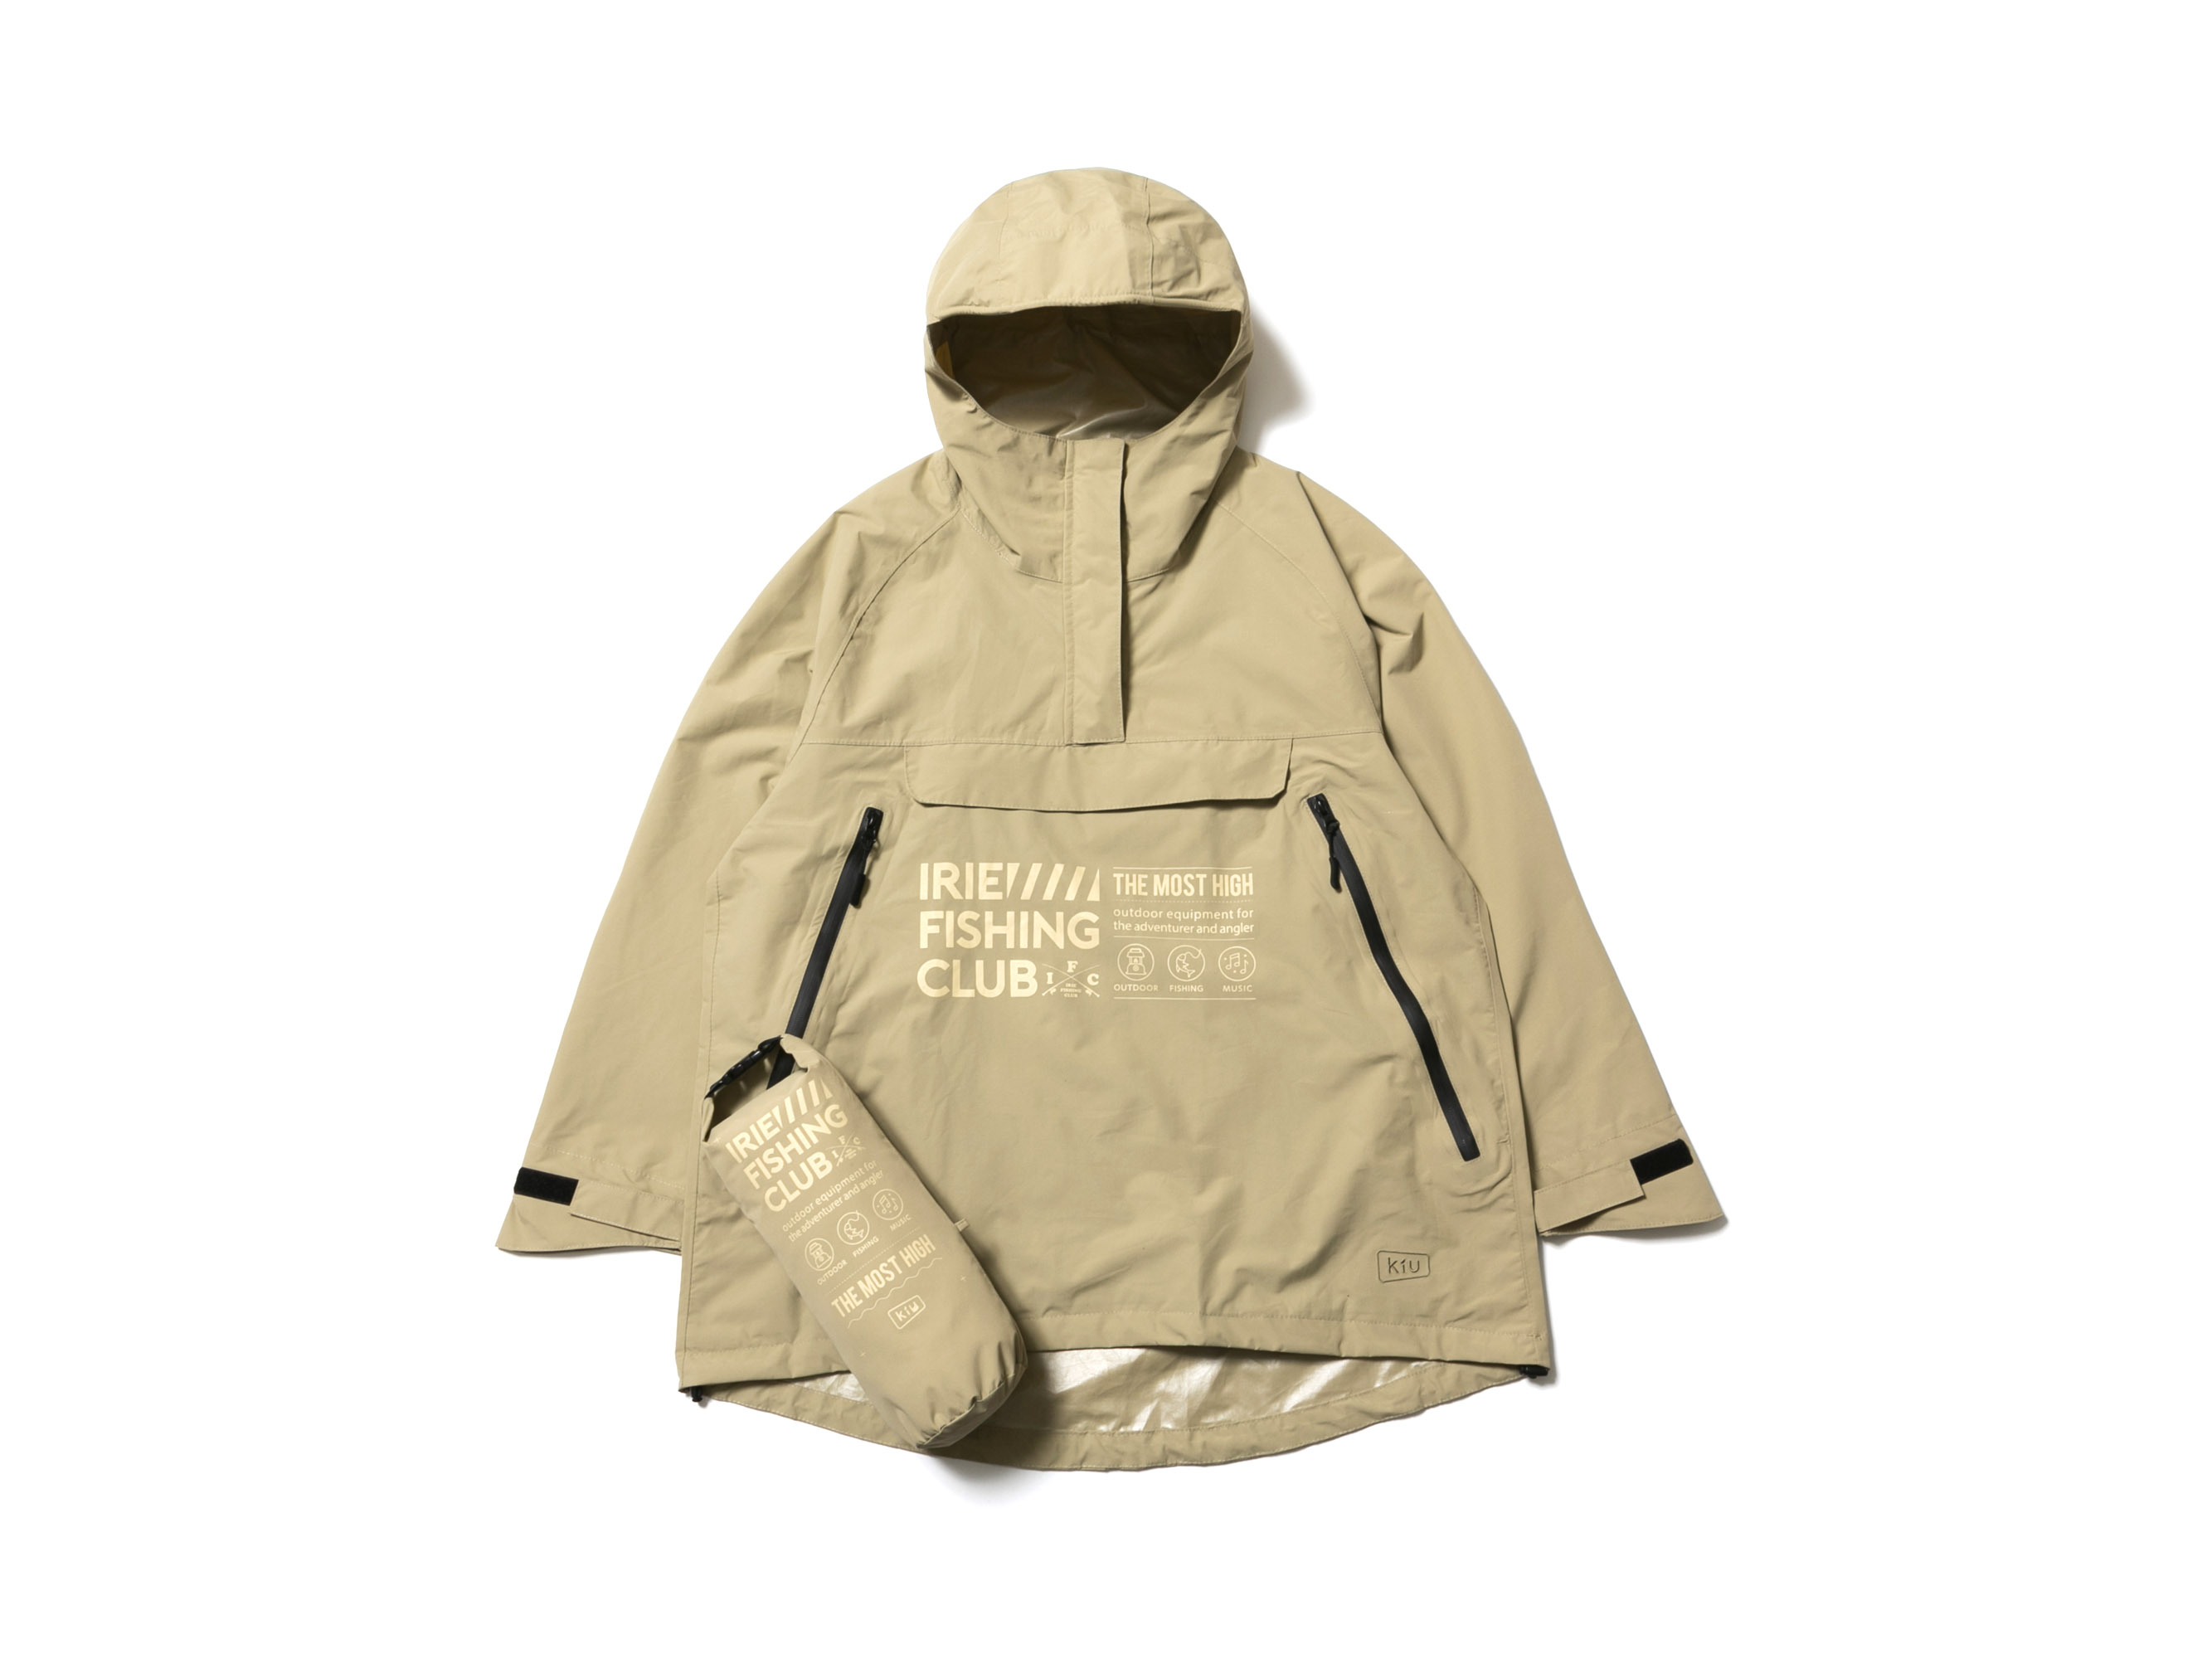 × KiU I.F.C HALF ZIP RAIN PARKA -IRIE FISHING CLUB-